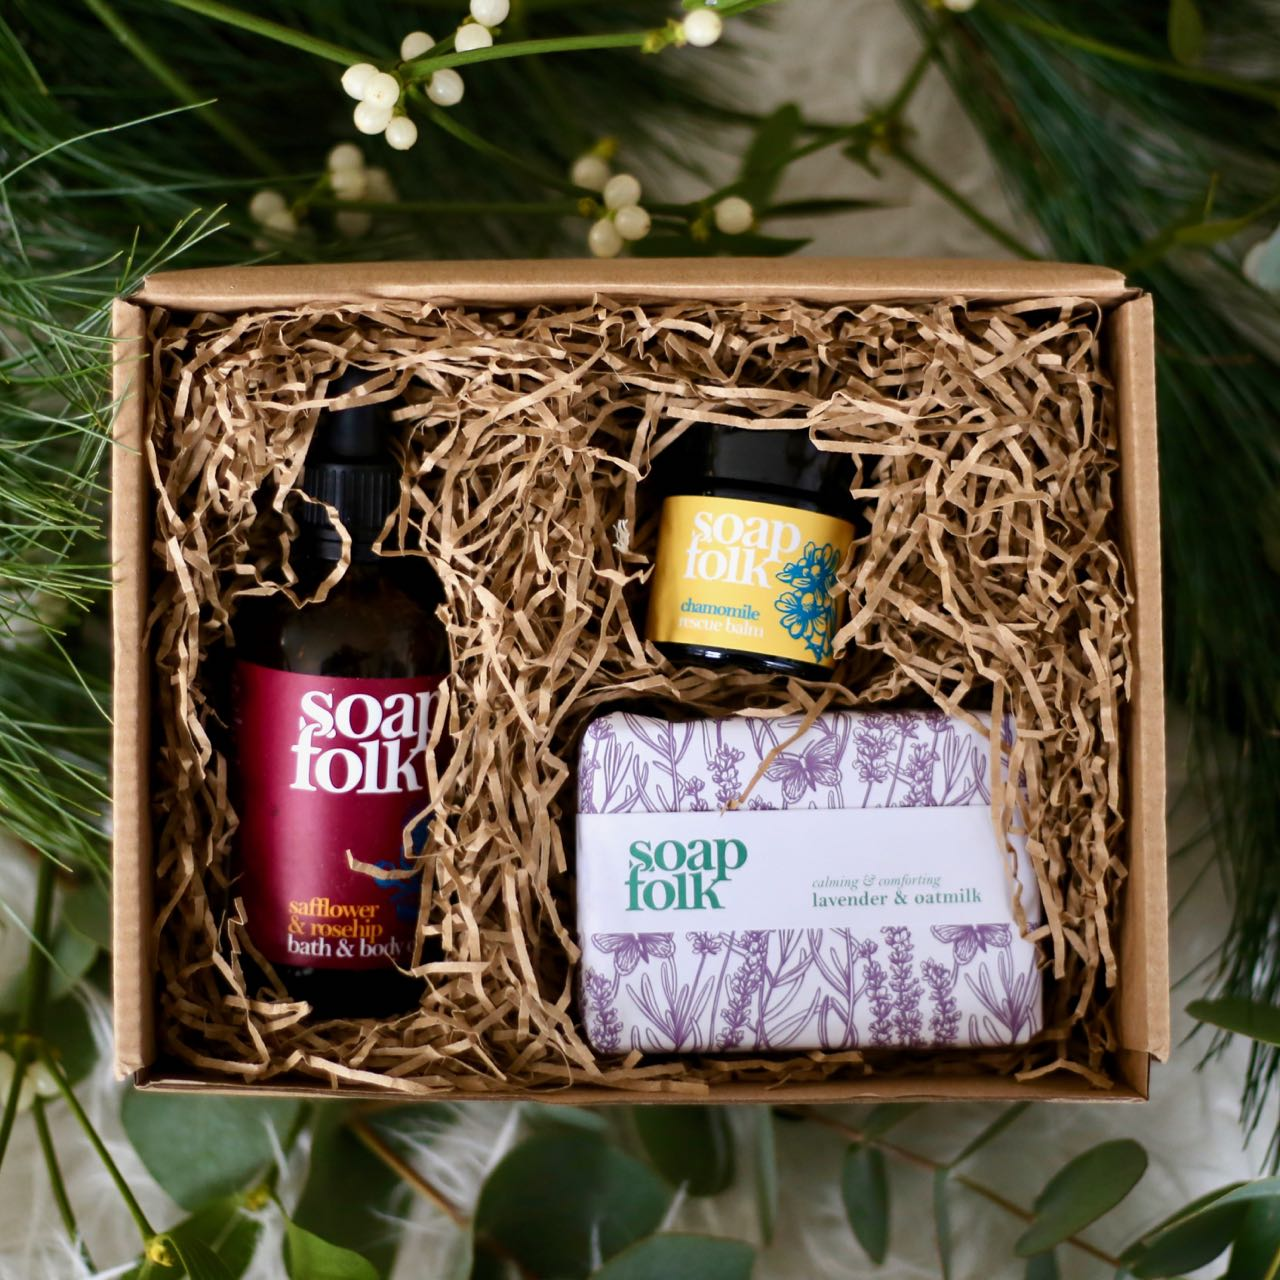 Winter Skin Collection box by Soap Folk